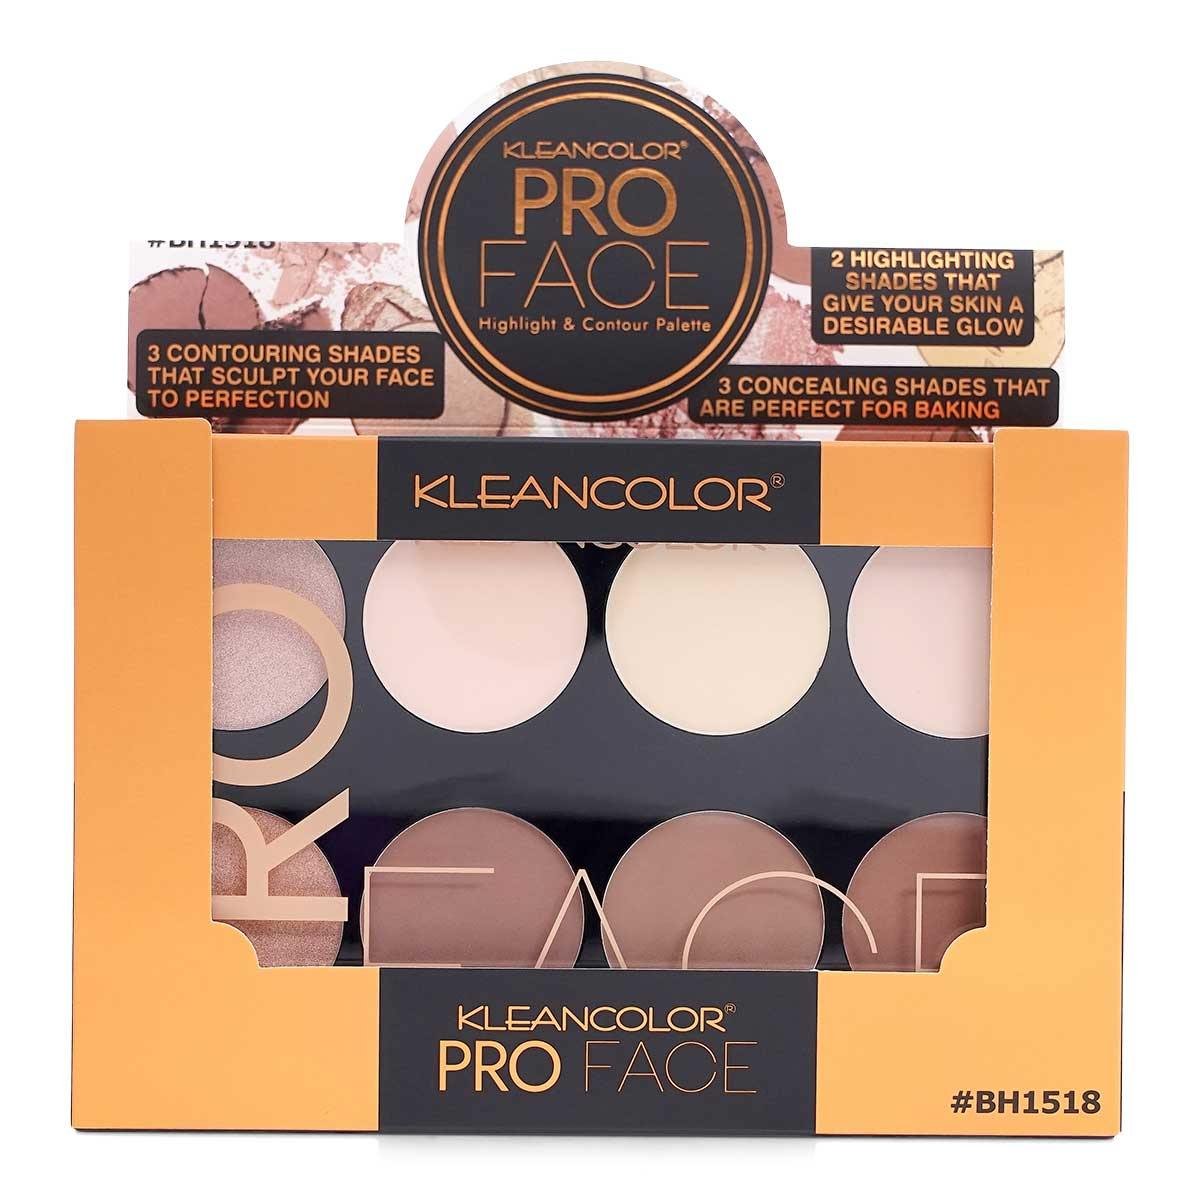 KLEANCOLOR Pro Face Slick, Highlight and Contour Palette (BH1518) - Display of 6 units